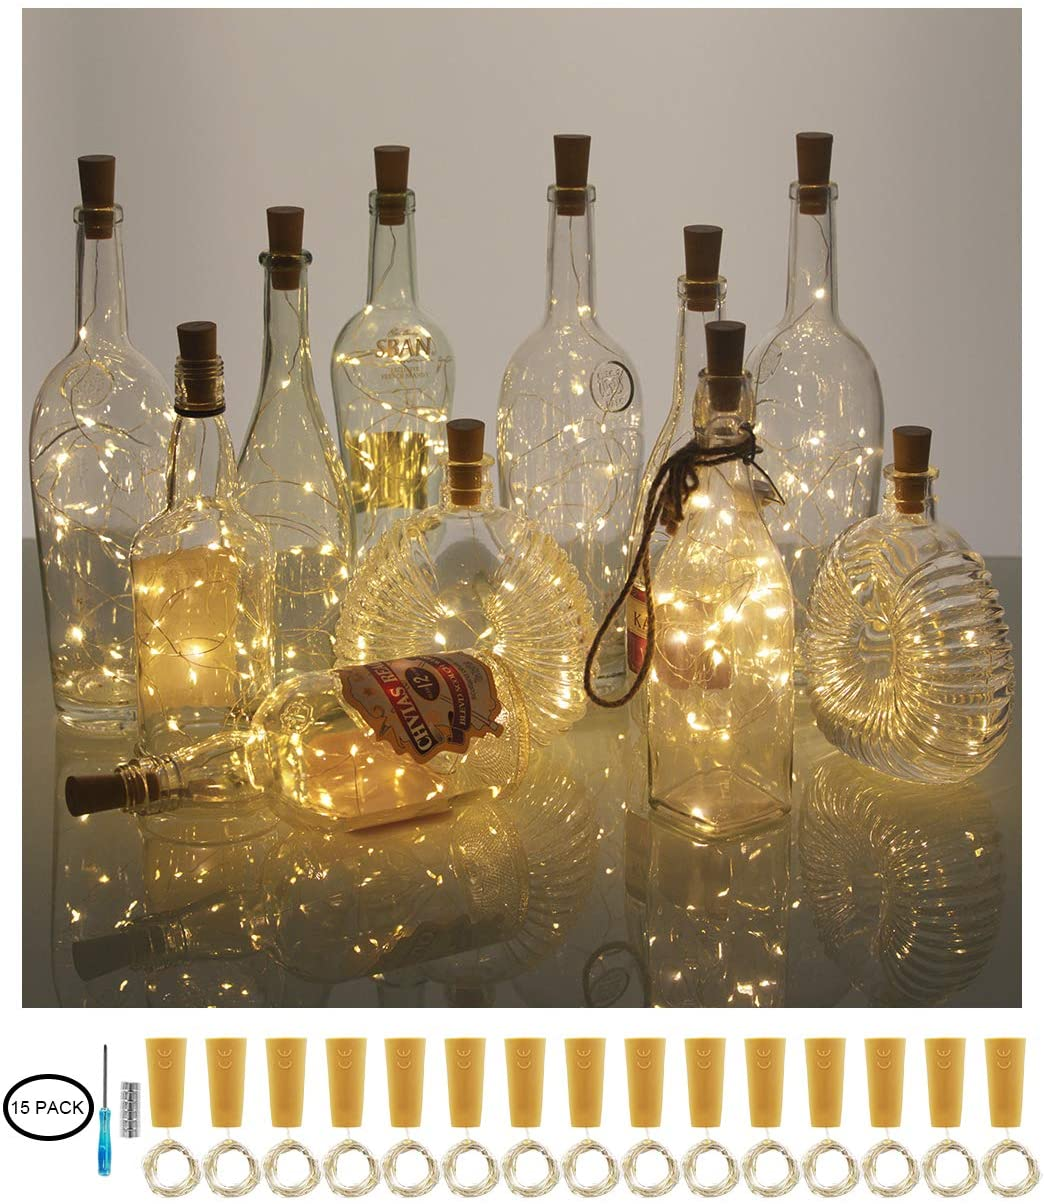 XIHADA Wine Bottle Lights with Cork, 20 LED Battery Operated Fairy String Lights Mini Copper Wire Bottle Lights for DIY, Party,Decor,Christmas,Thanksgiving Day,Wedding (15 Packs, Warmwhite)